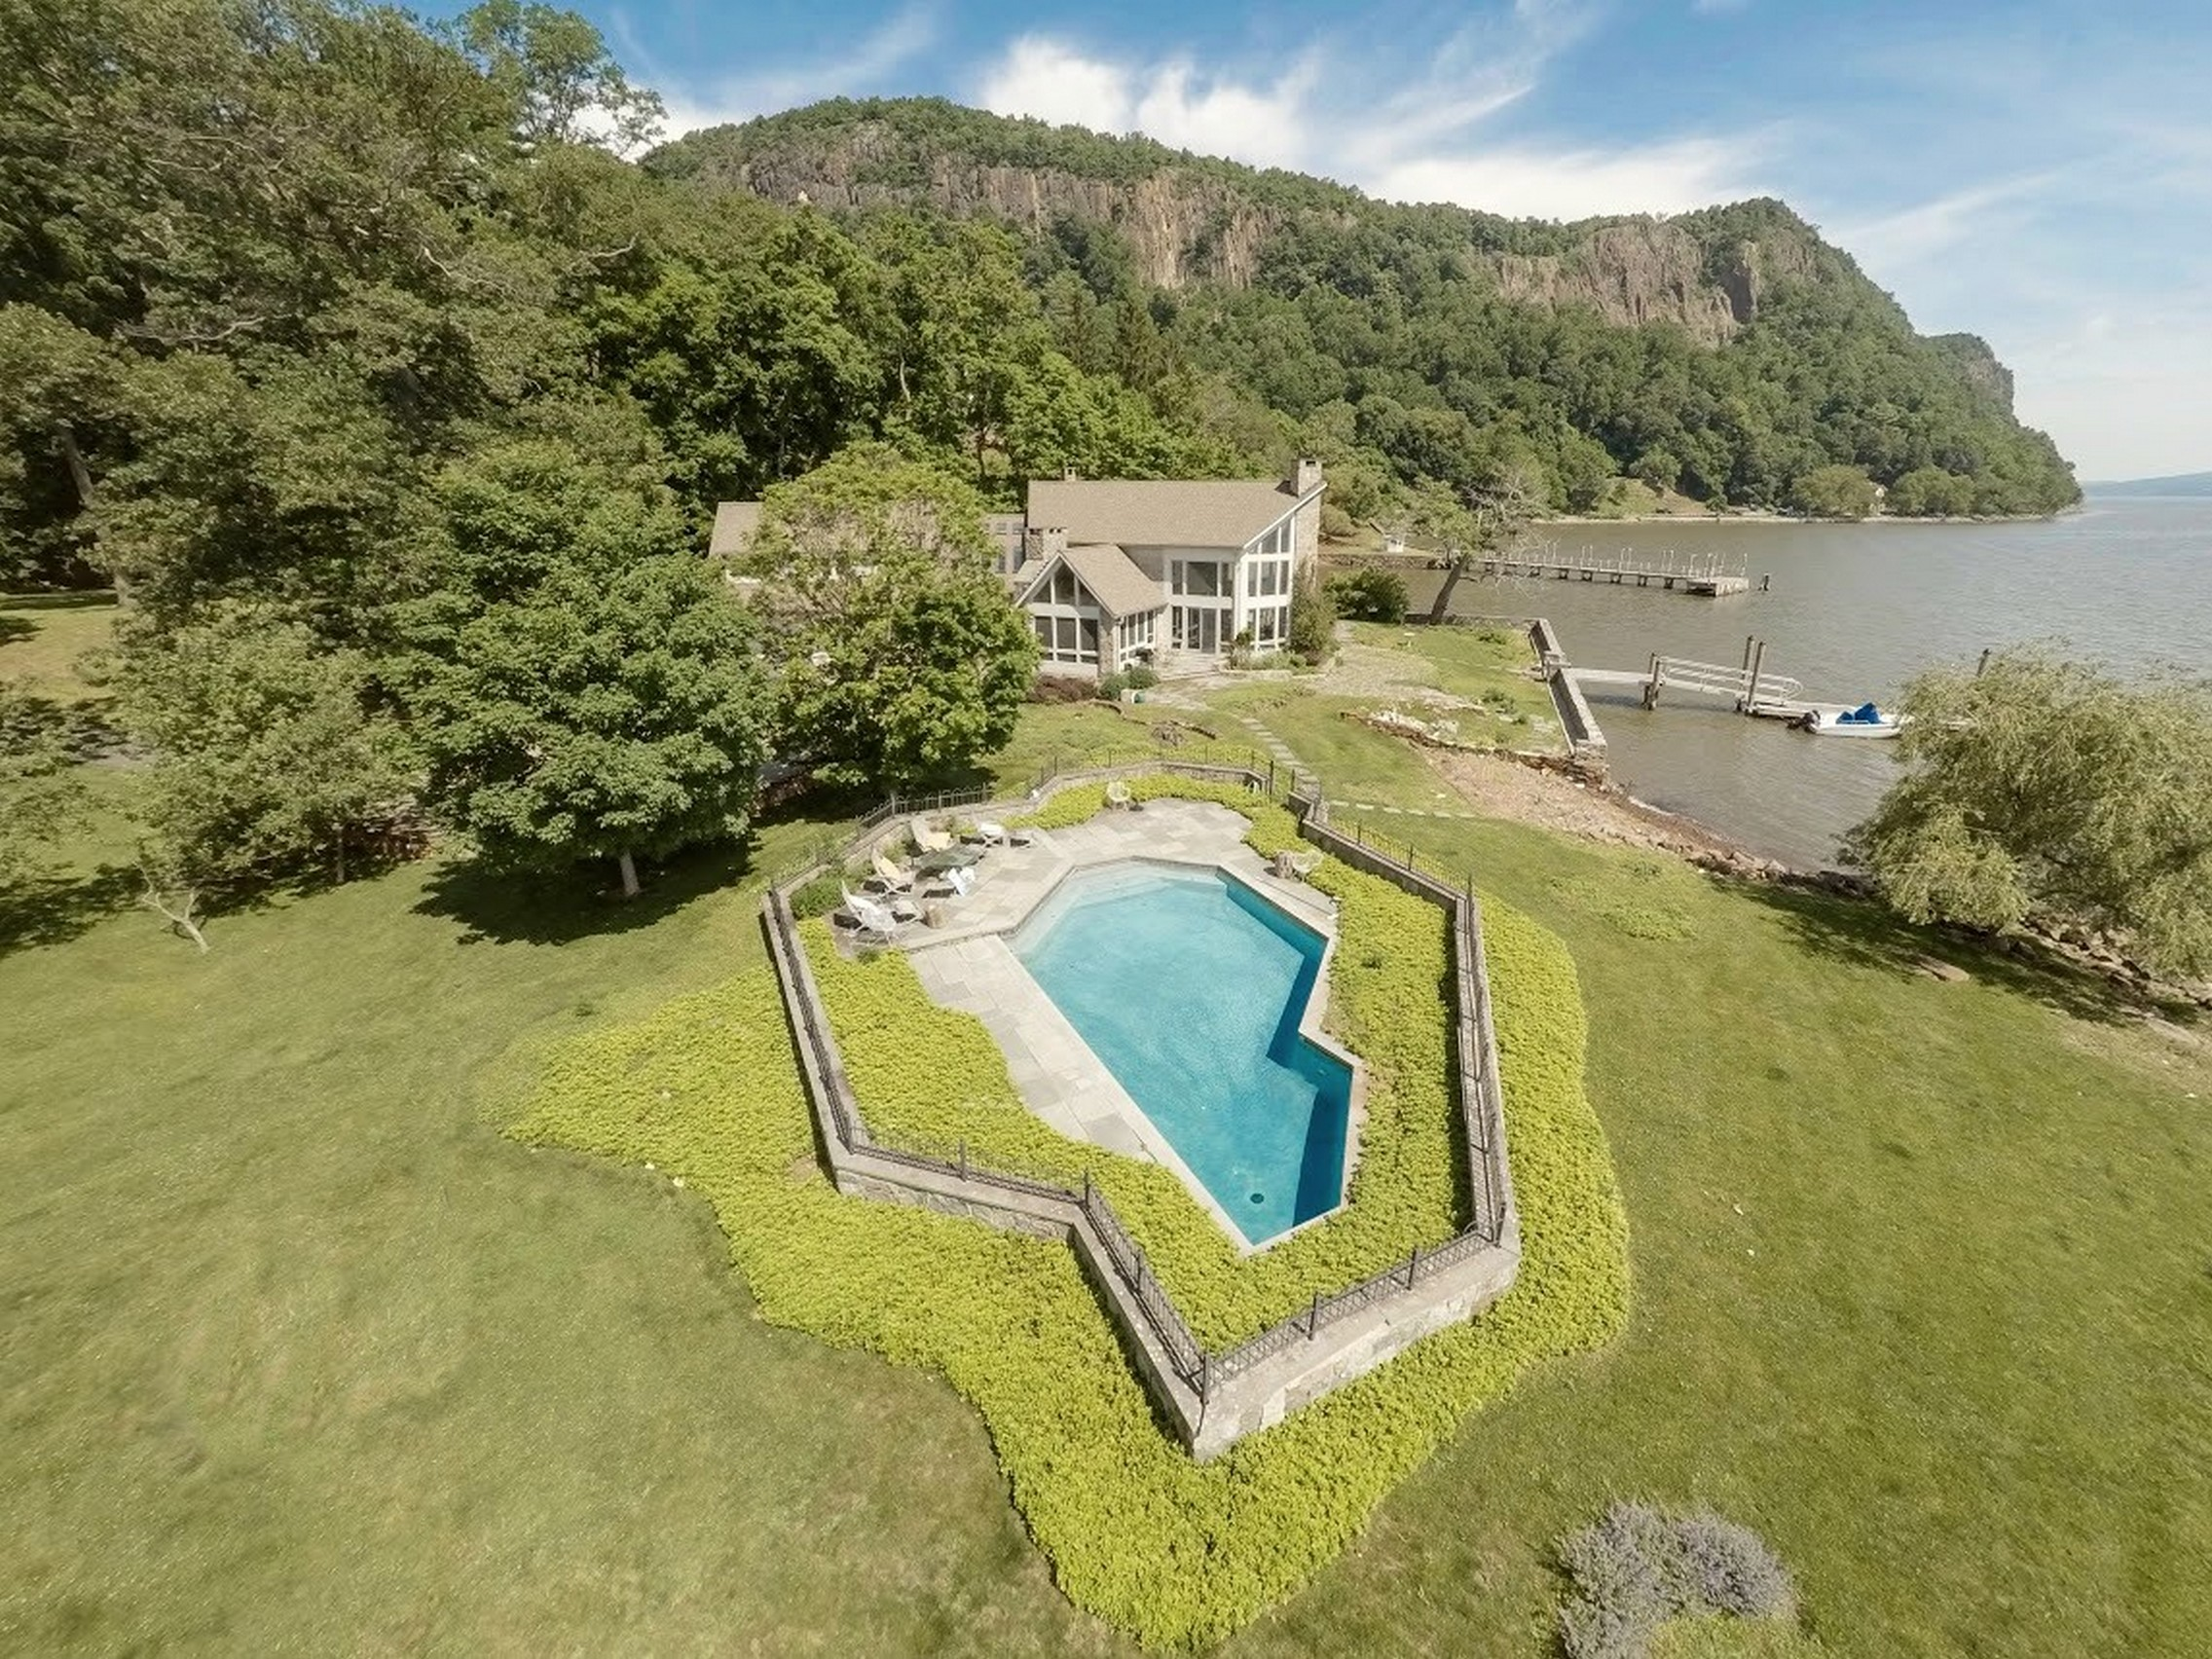 Single Family Home for Sale at Extraordinary Hudson Riverfront Property 641 North Broadway Upper Nyack, New York 10960 United States